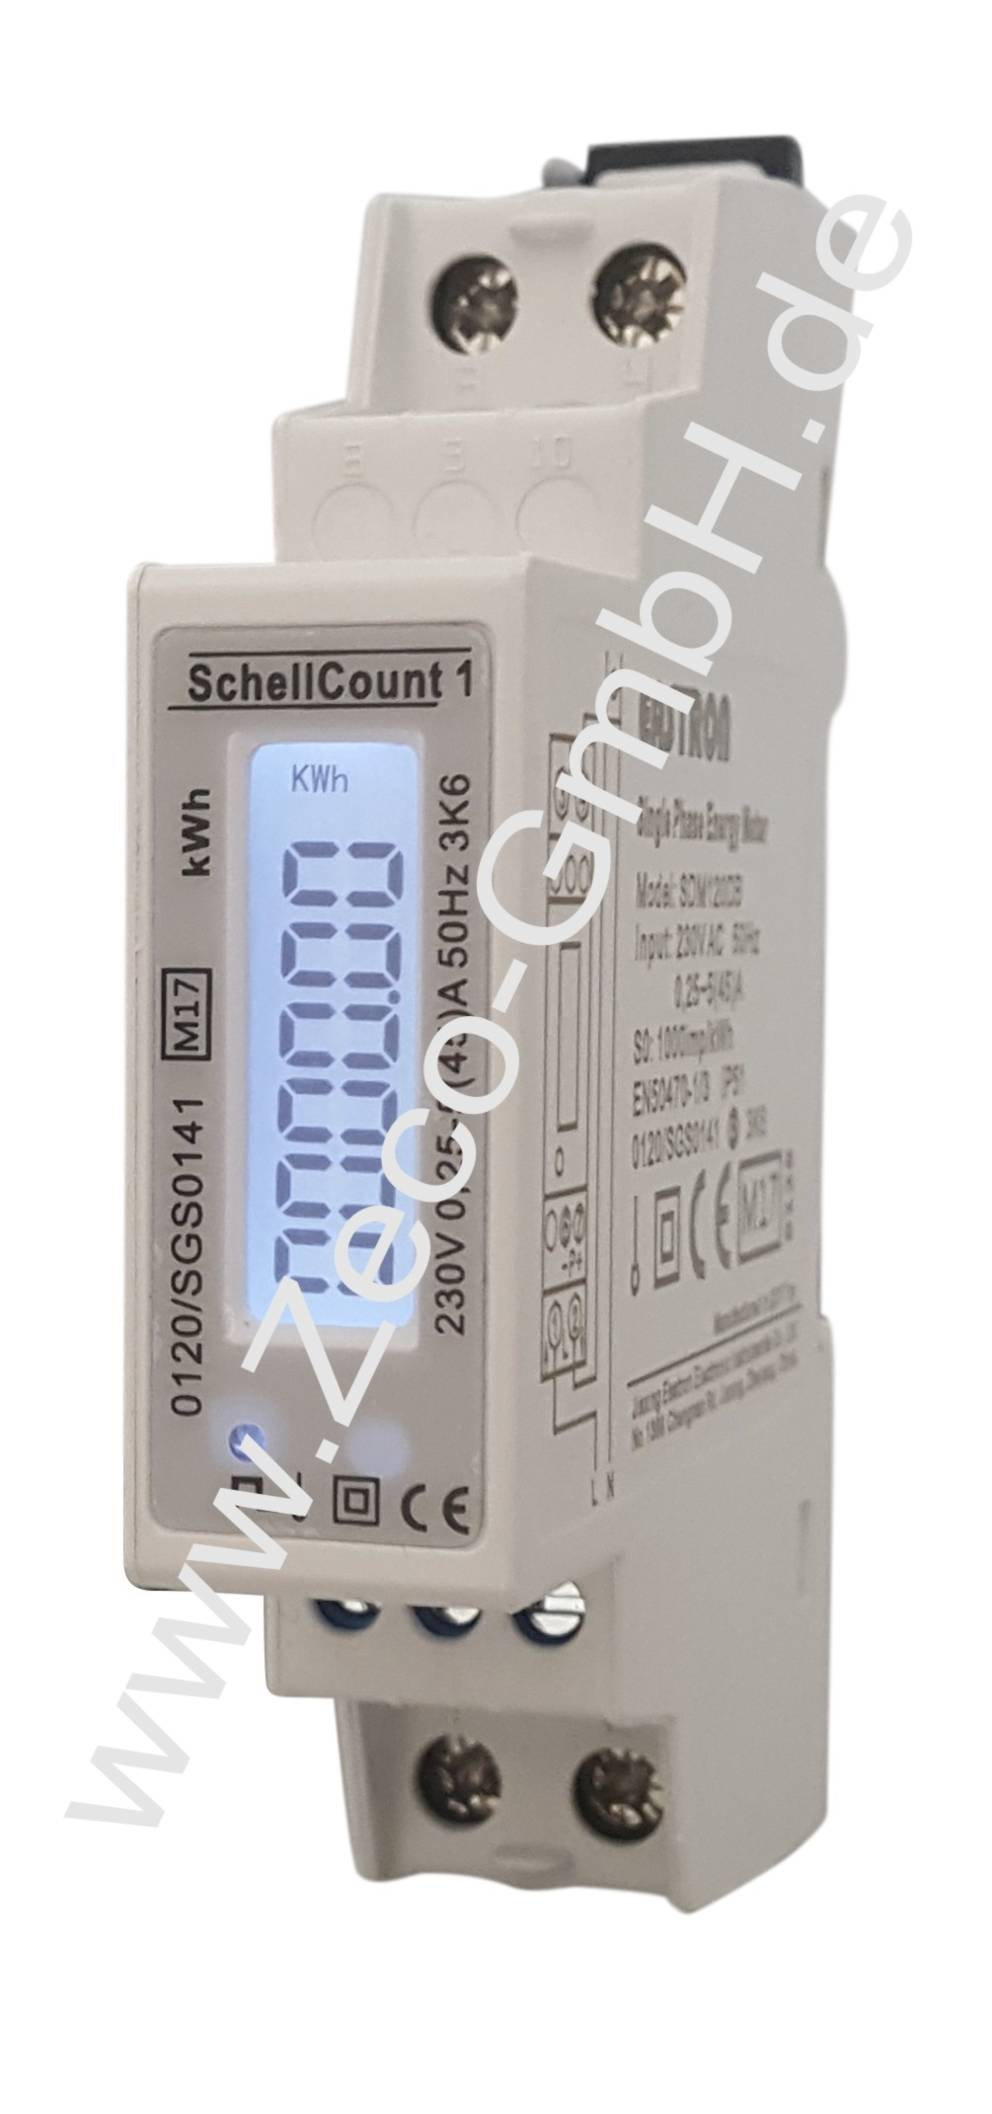 SchellCount1 LC-Display www.Schellcount-Online.de